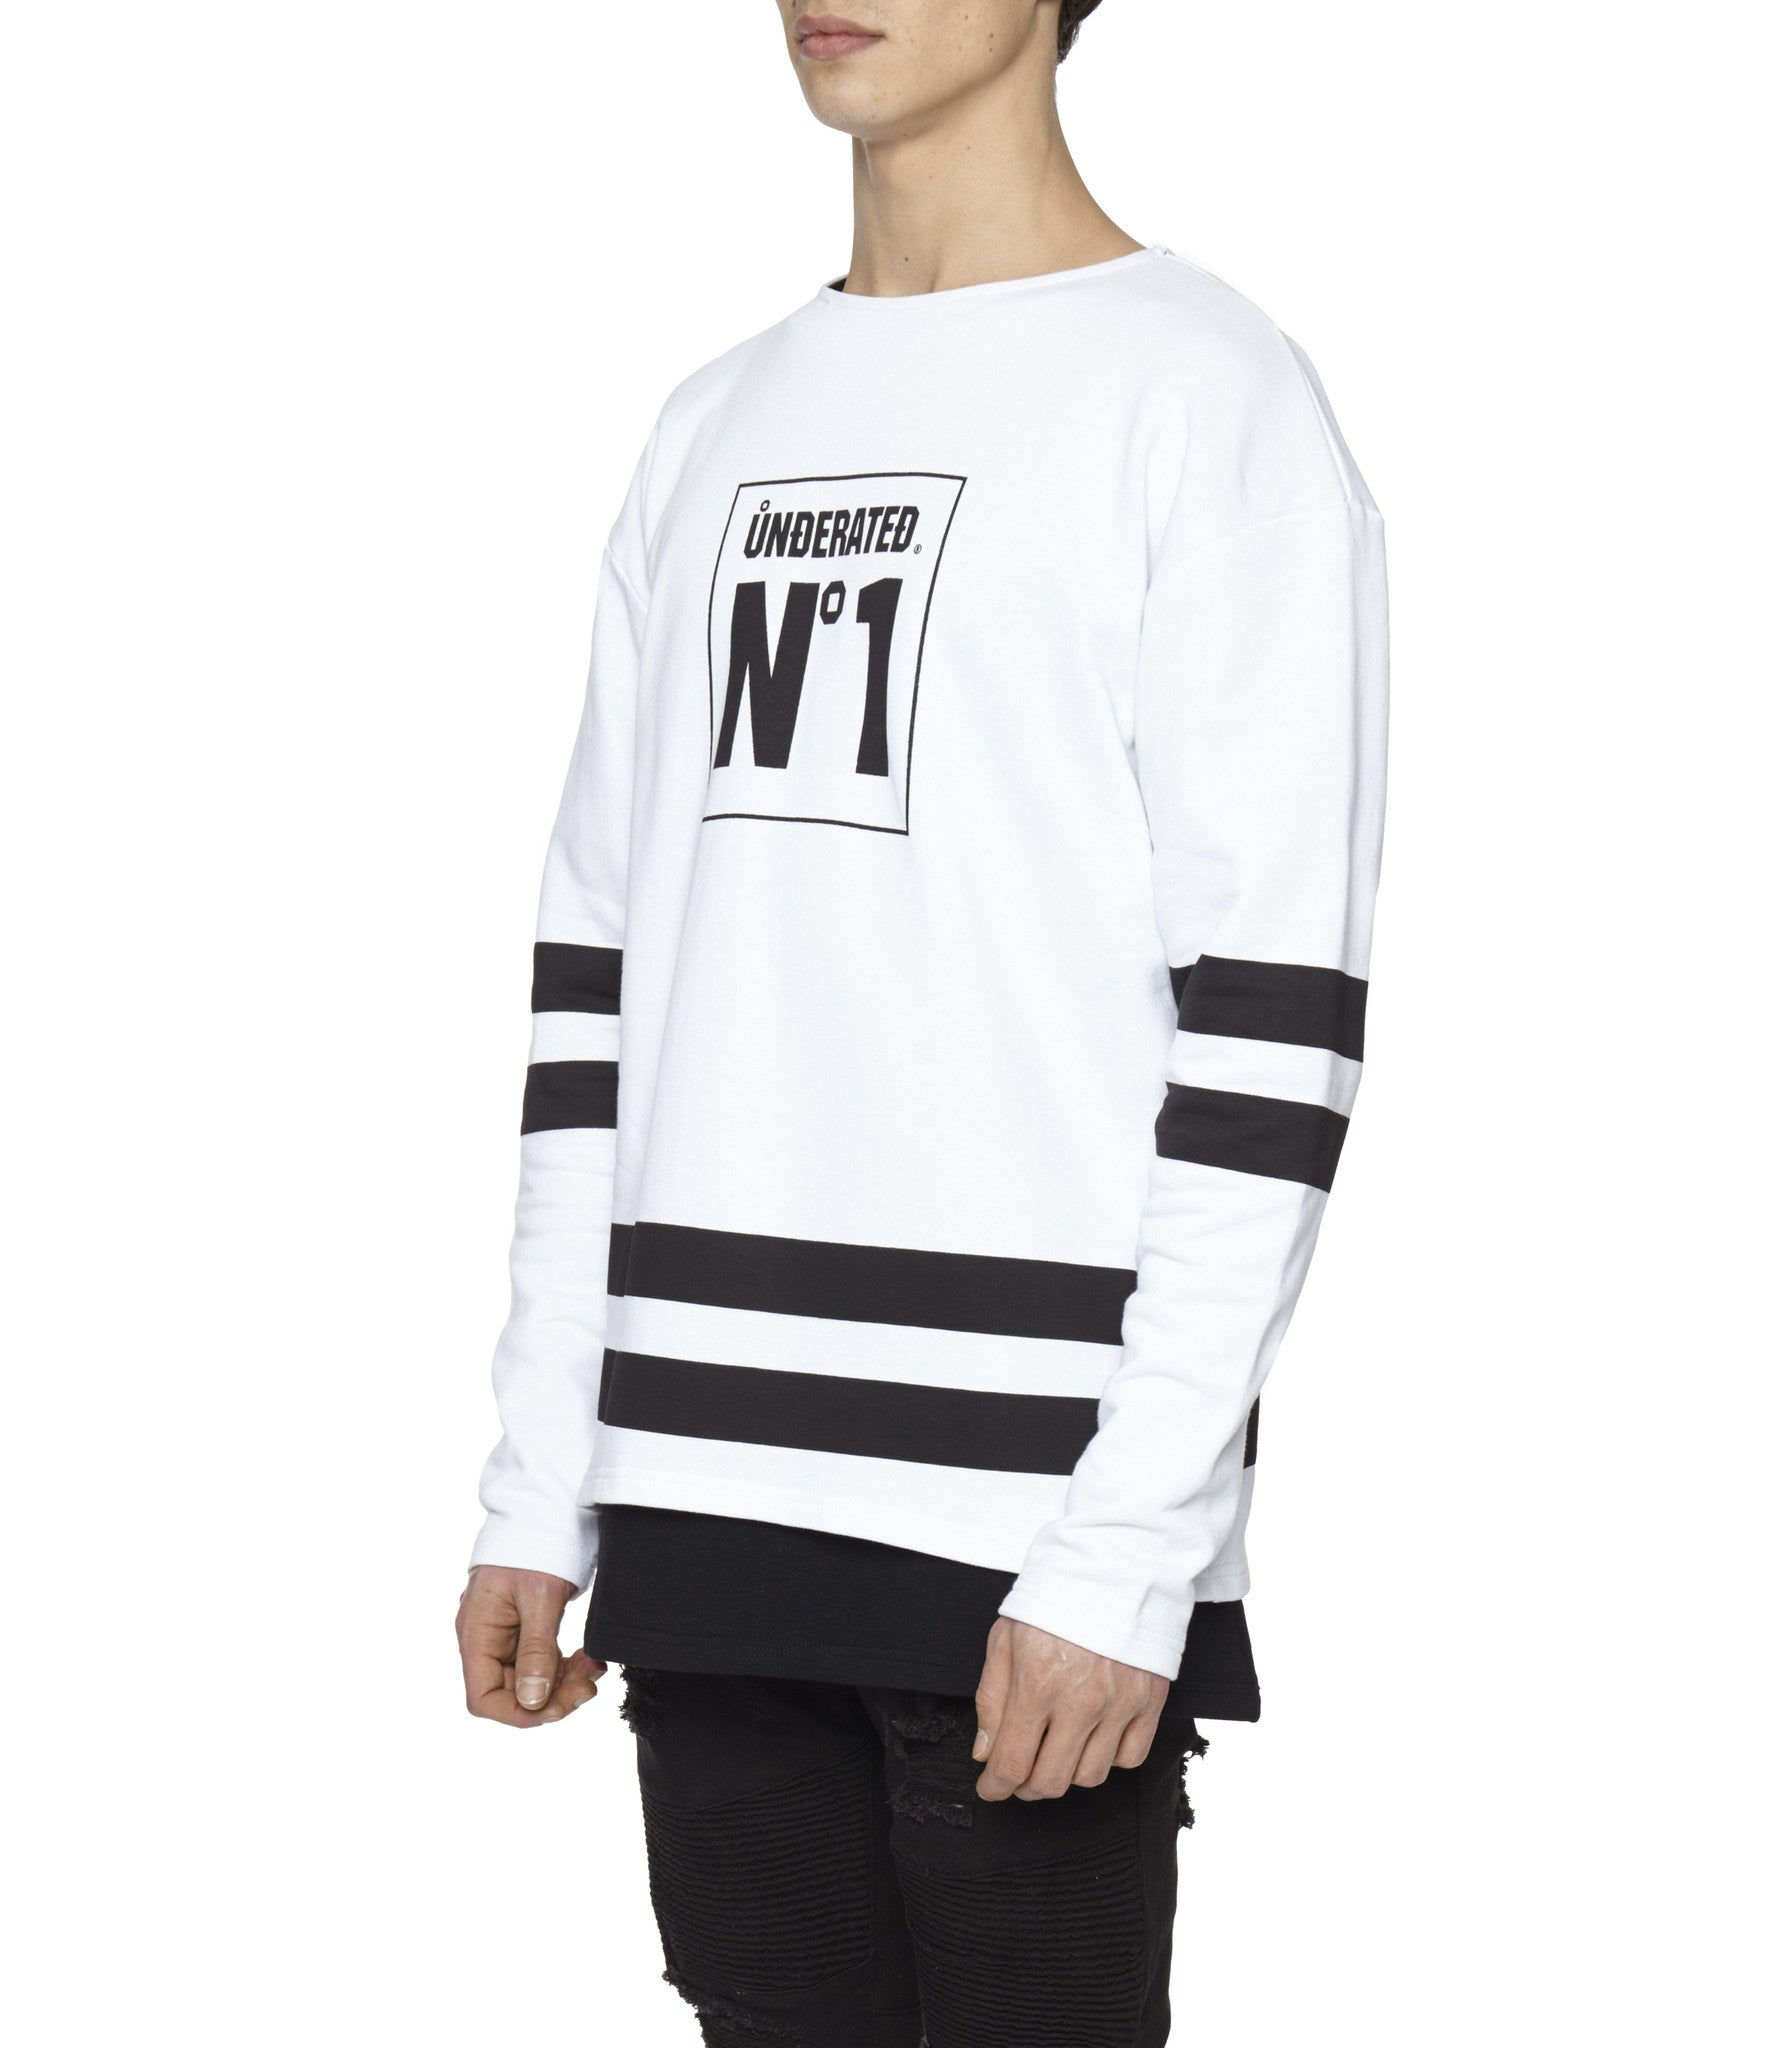 SW313 No.1 Printed Sweatshirt - White - underated london - underatedco - 6